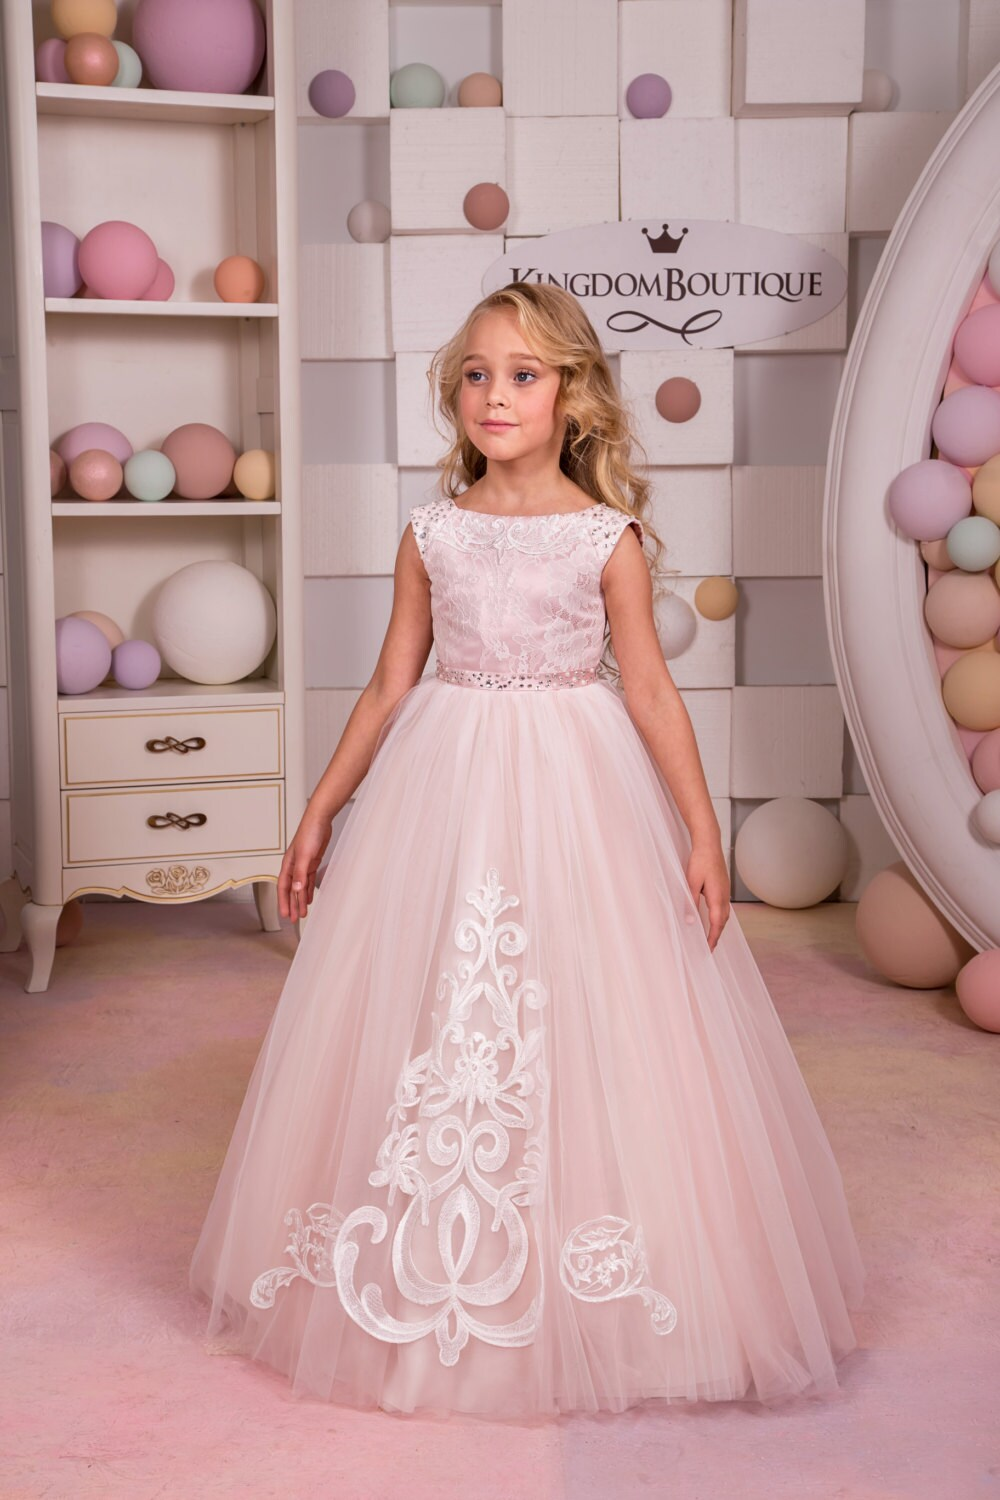 Blush Pink Lace Flower Girl Dress - Flower Girl Dresses